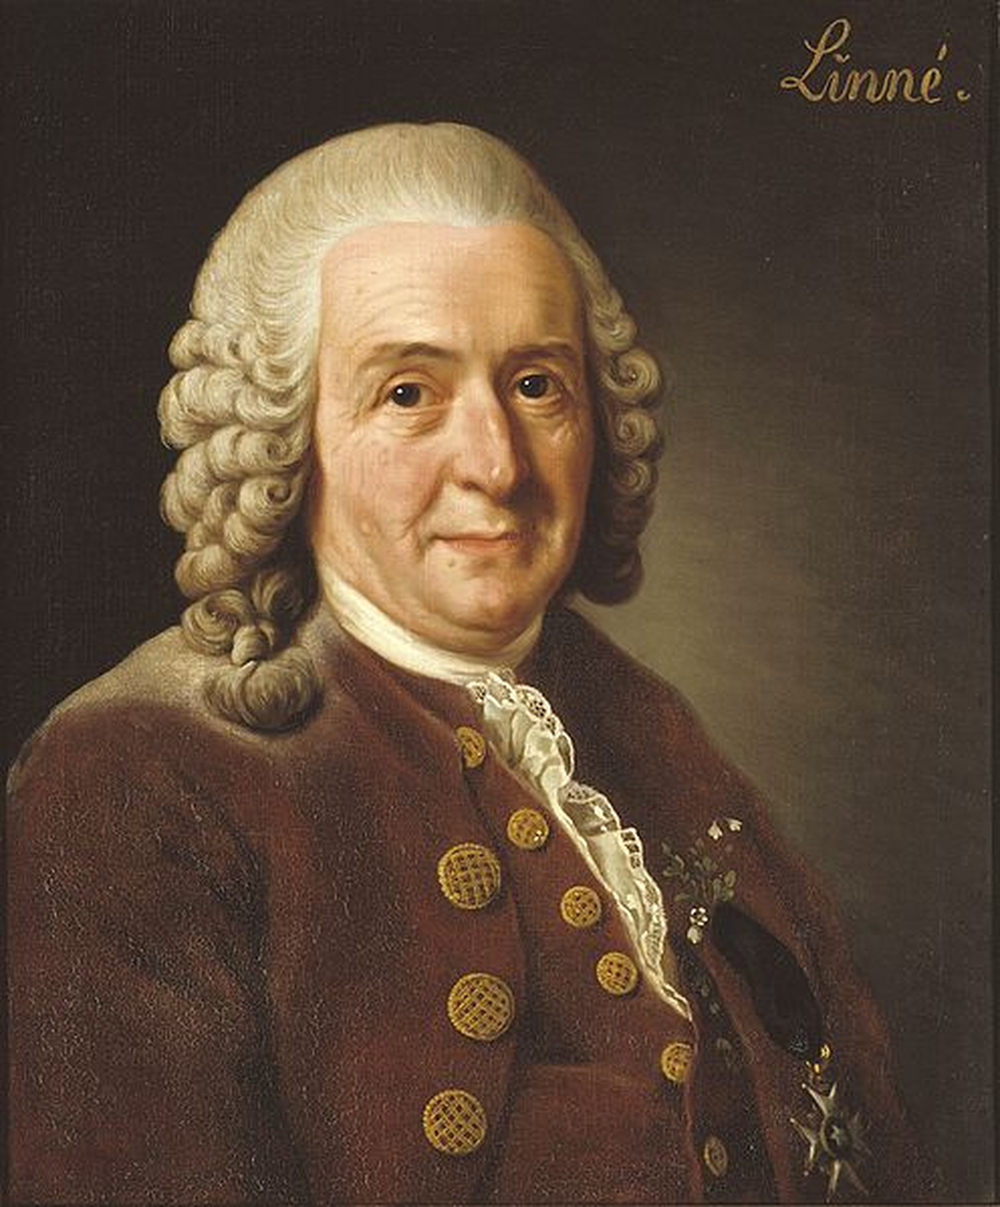 According to the paper, Carl von Linné, the Swedish botanist and father of taxonomy, would be a computational biologist today.  Image credit:  Nationalmuseum Stockholm .